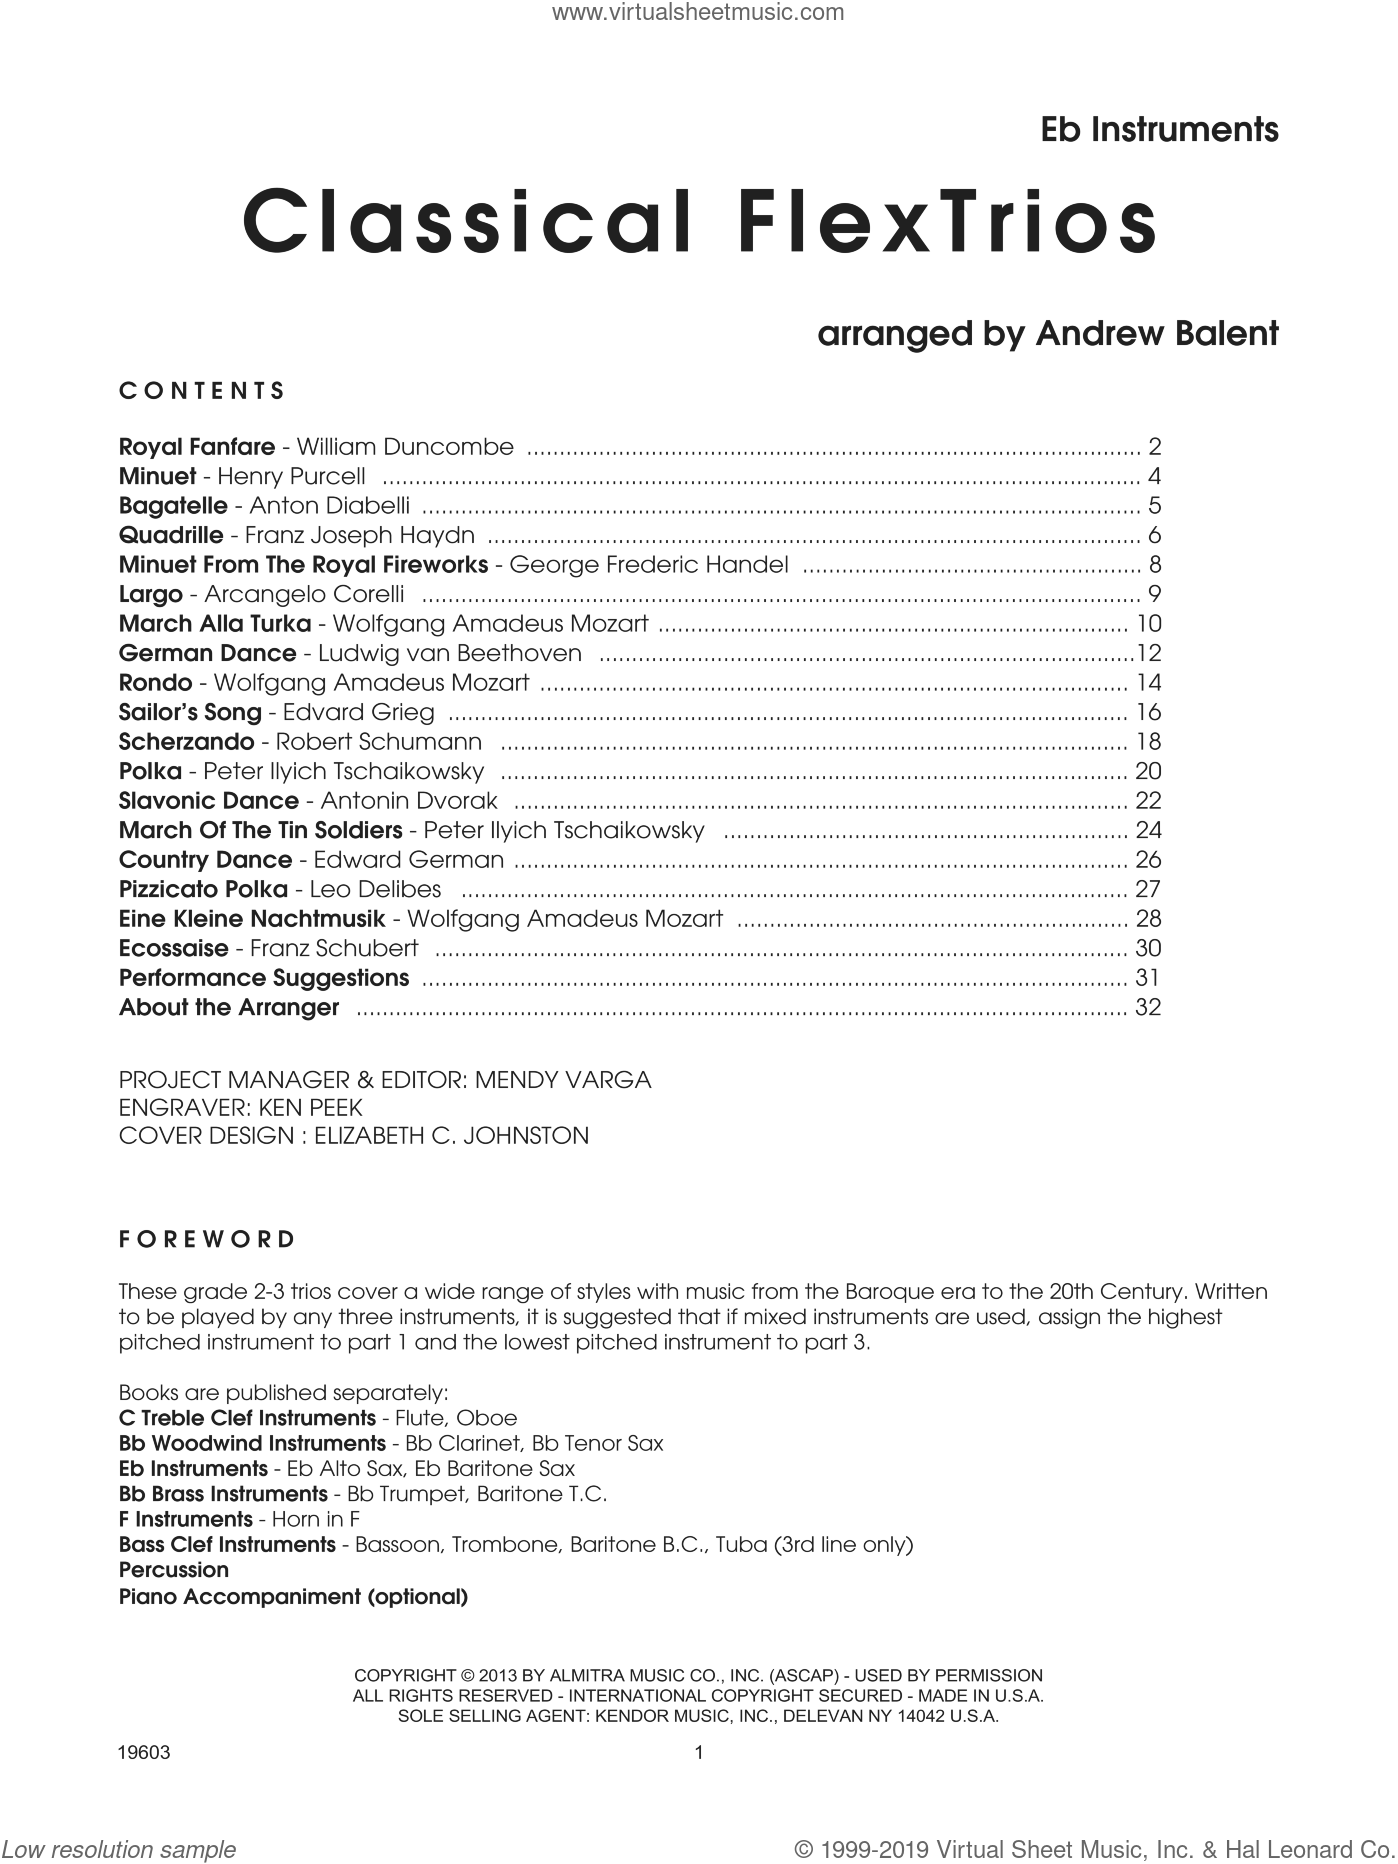 Classical FlexTrios, Eb instruments sheet music for trio (Eb instruments) by Balent